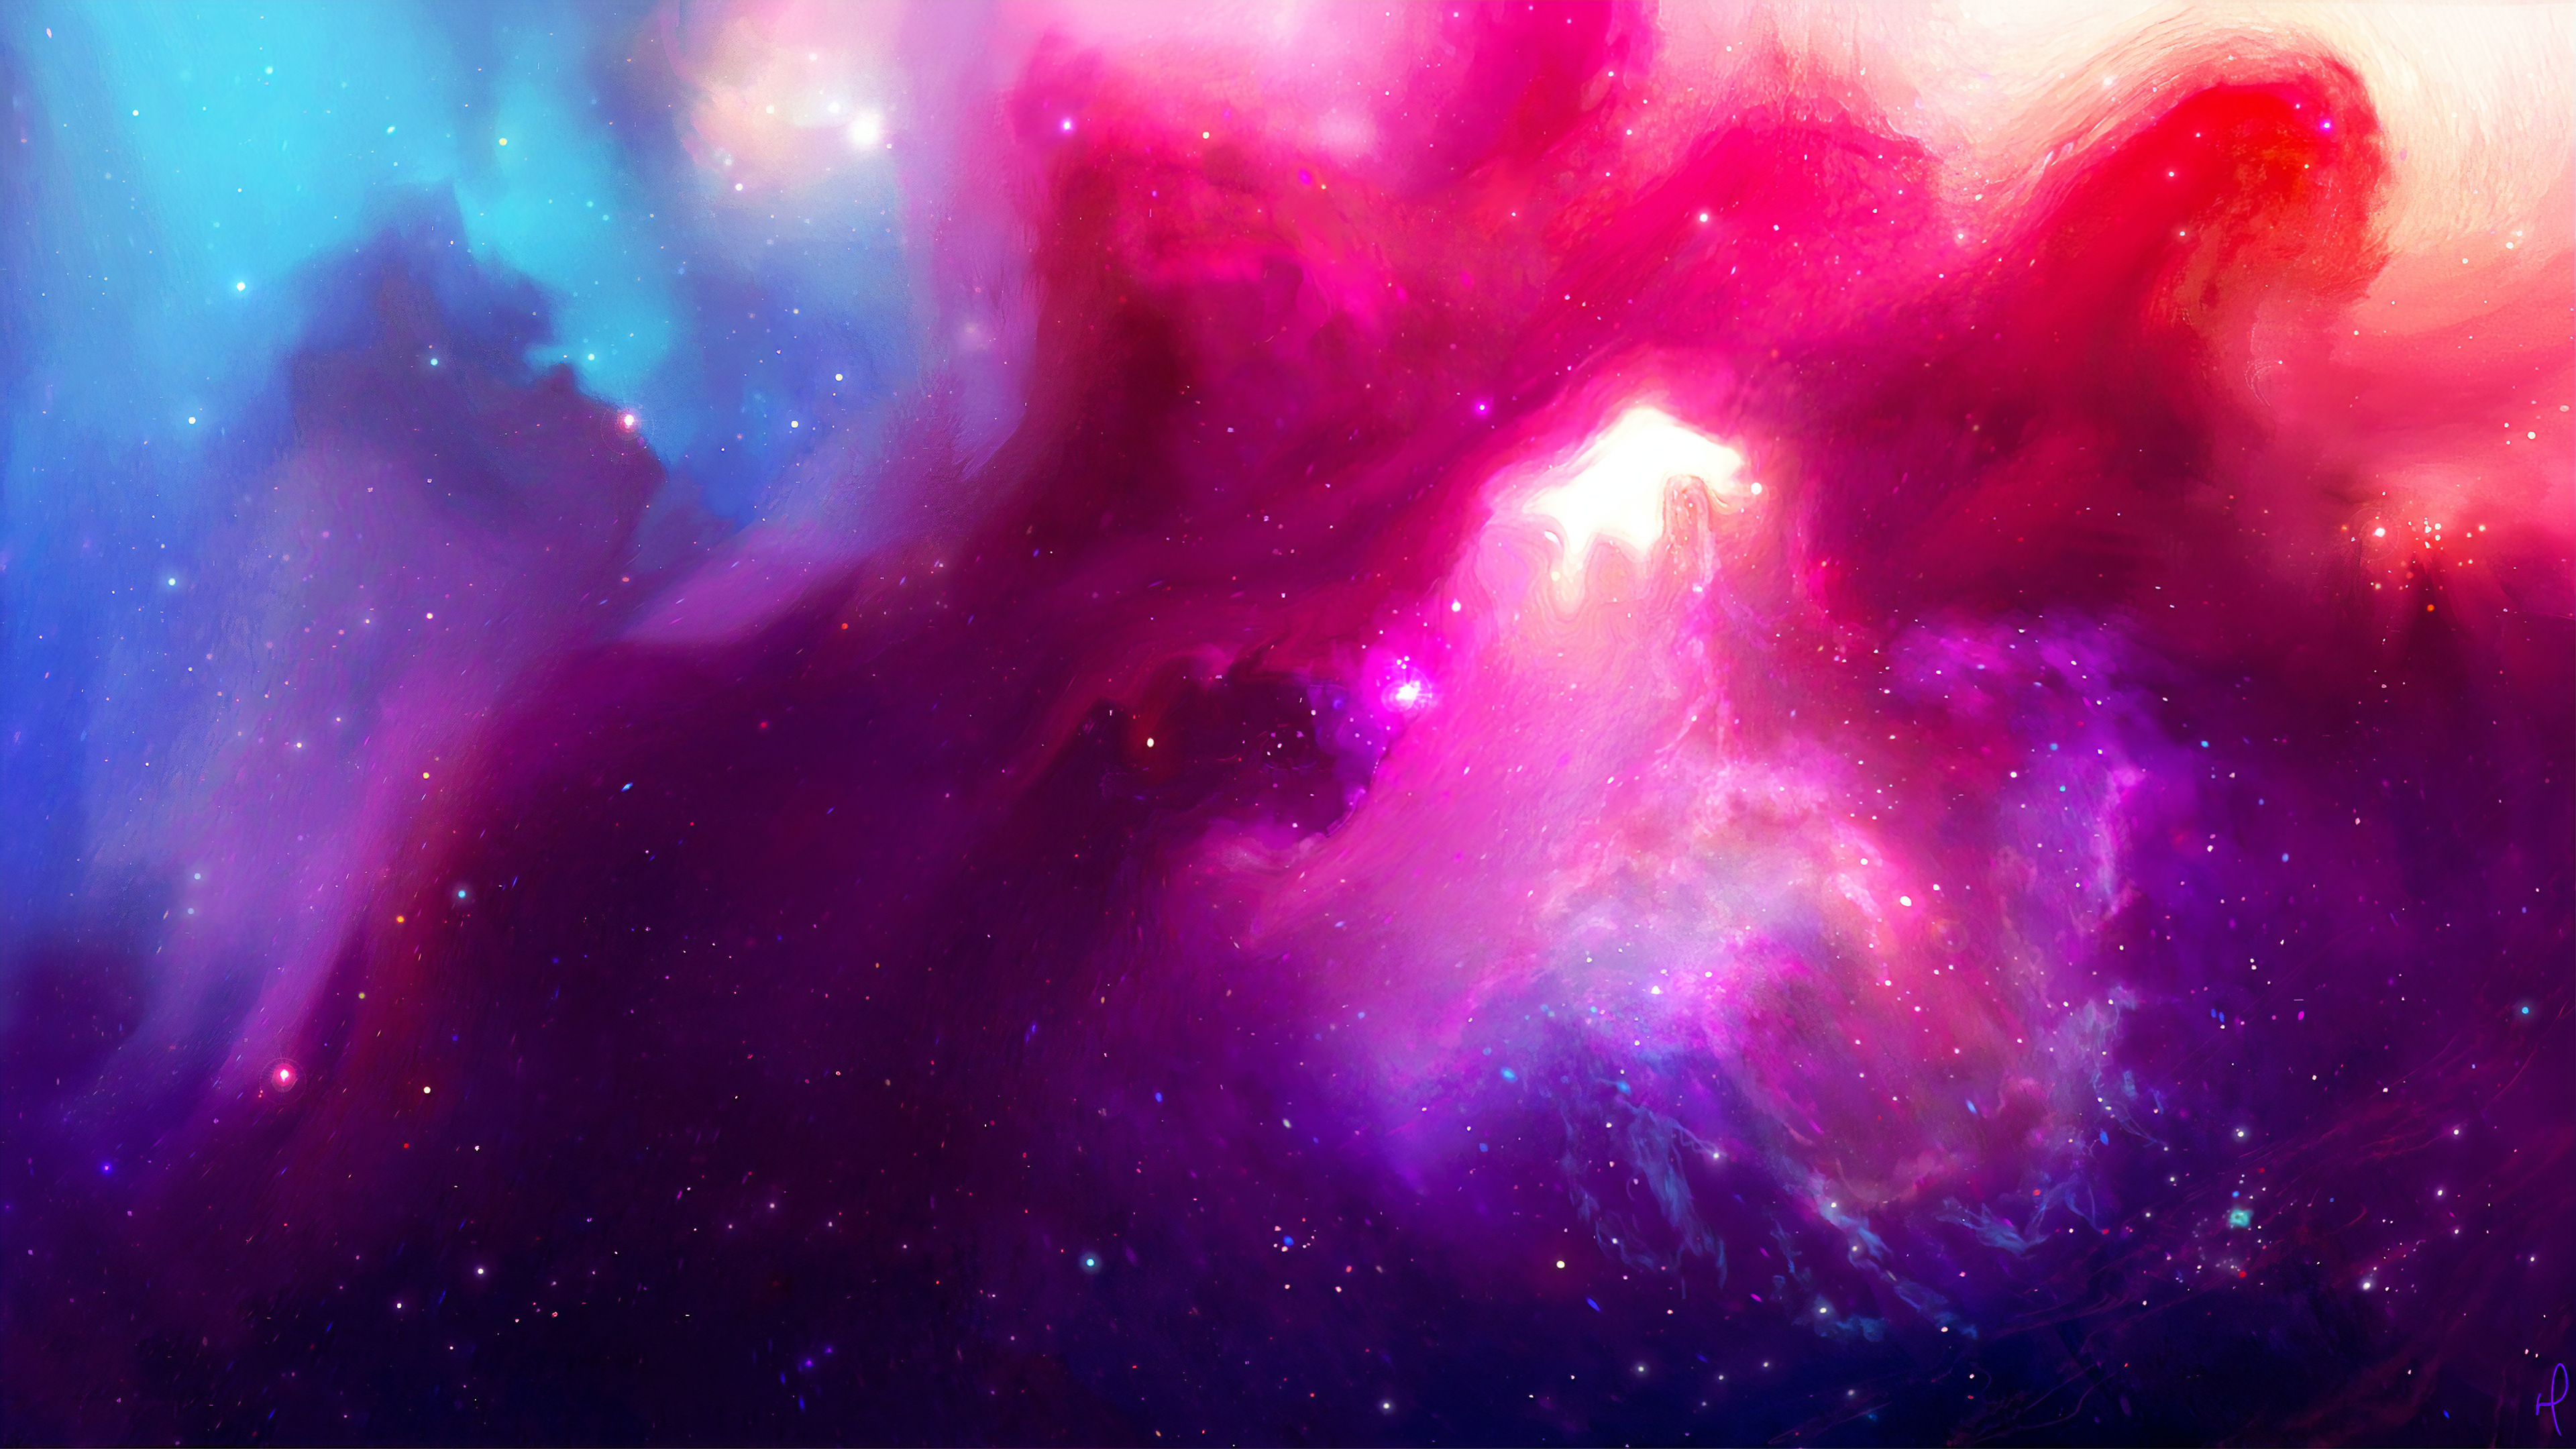 nebula cosmos 4k 1560535298 - Nebula Cosmos 4k - nebula wallpapers, hd-wallpapers, digital art wallpapers, deviantart wallpapers, artwork wallpapers, artist wallpapers, 4k-wallpapers